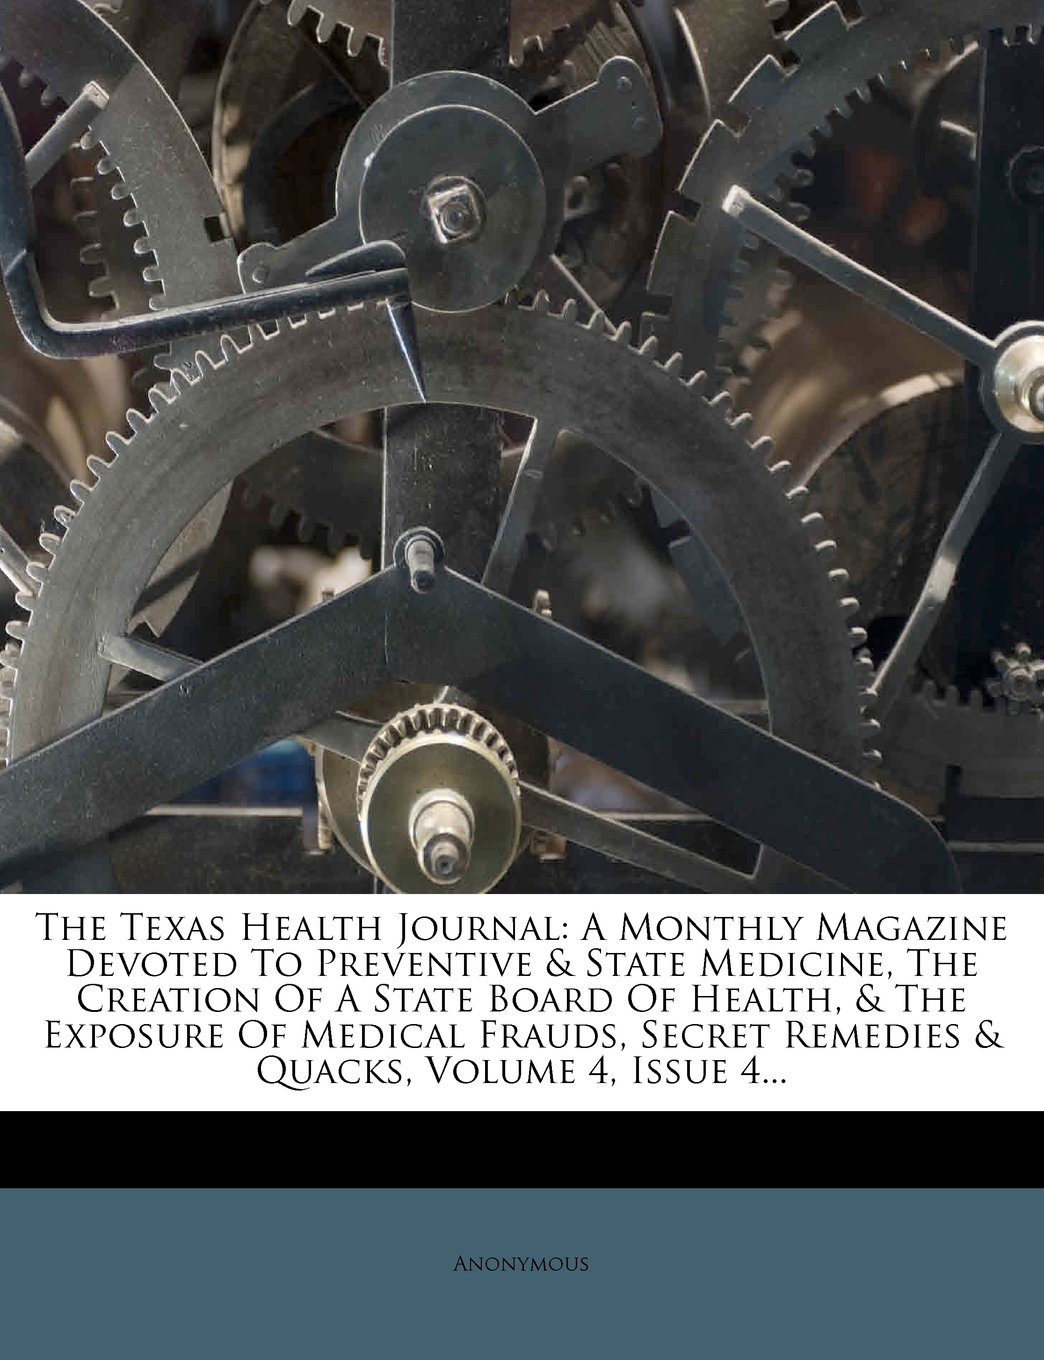 Download The Texas Health Journal: A Monthly Magazine Devoted To Preventive & State Medicine, The Creation Of A State Board Of Health, & The Exposure Of ... Remedies & Quacks, Volume 4, Issue 4... pdf